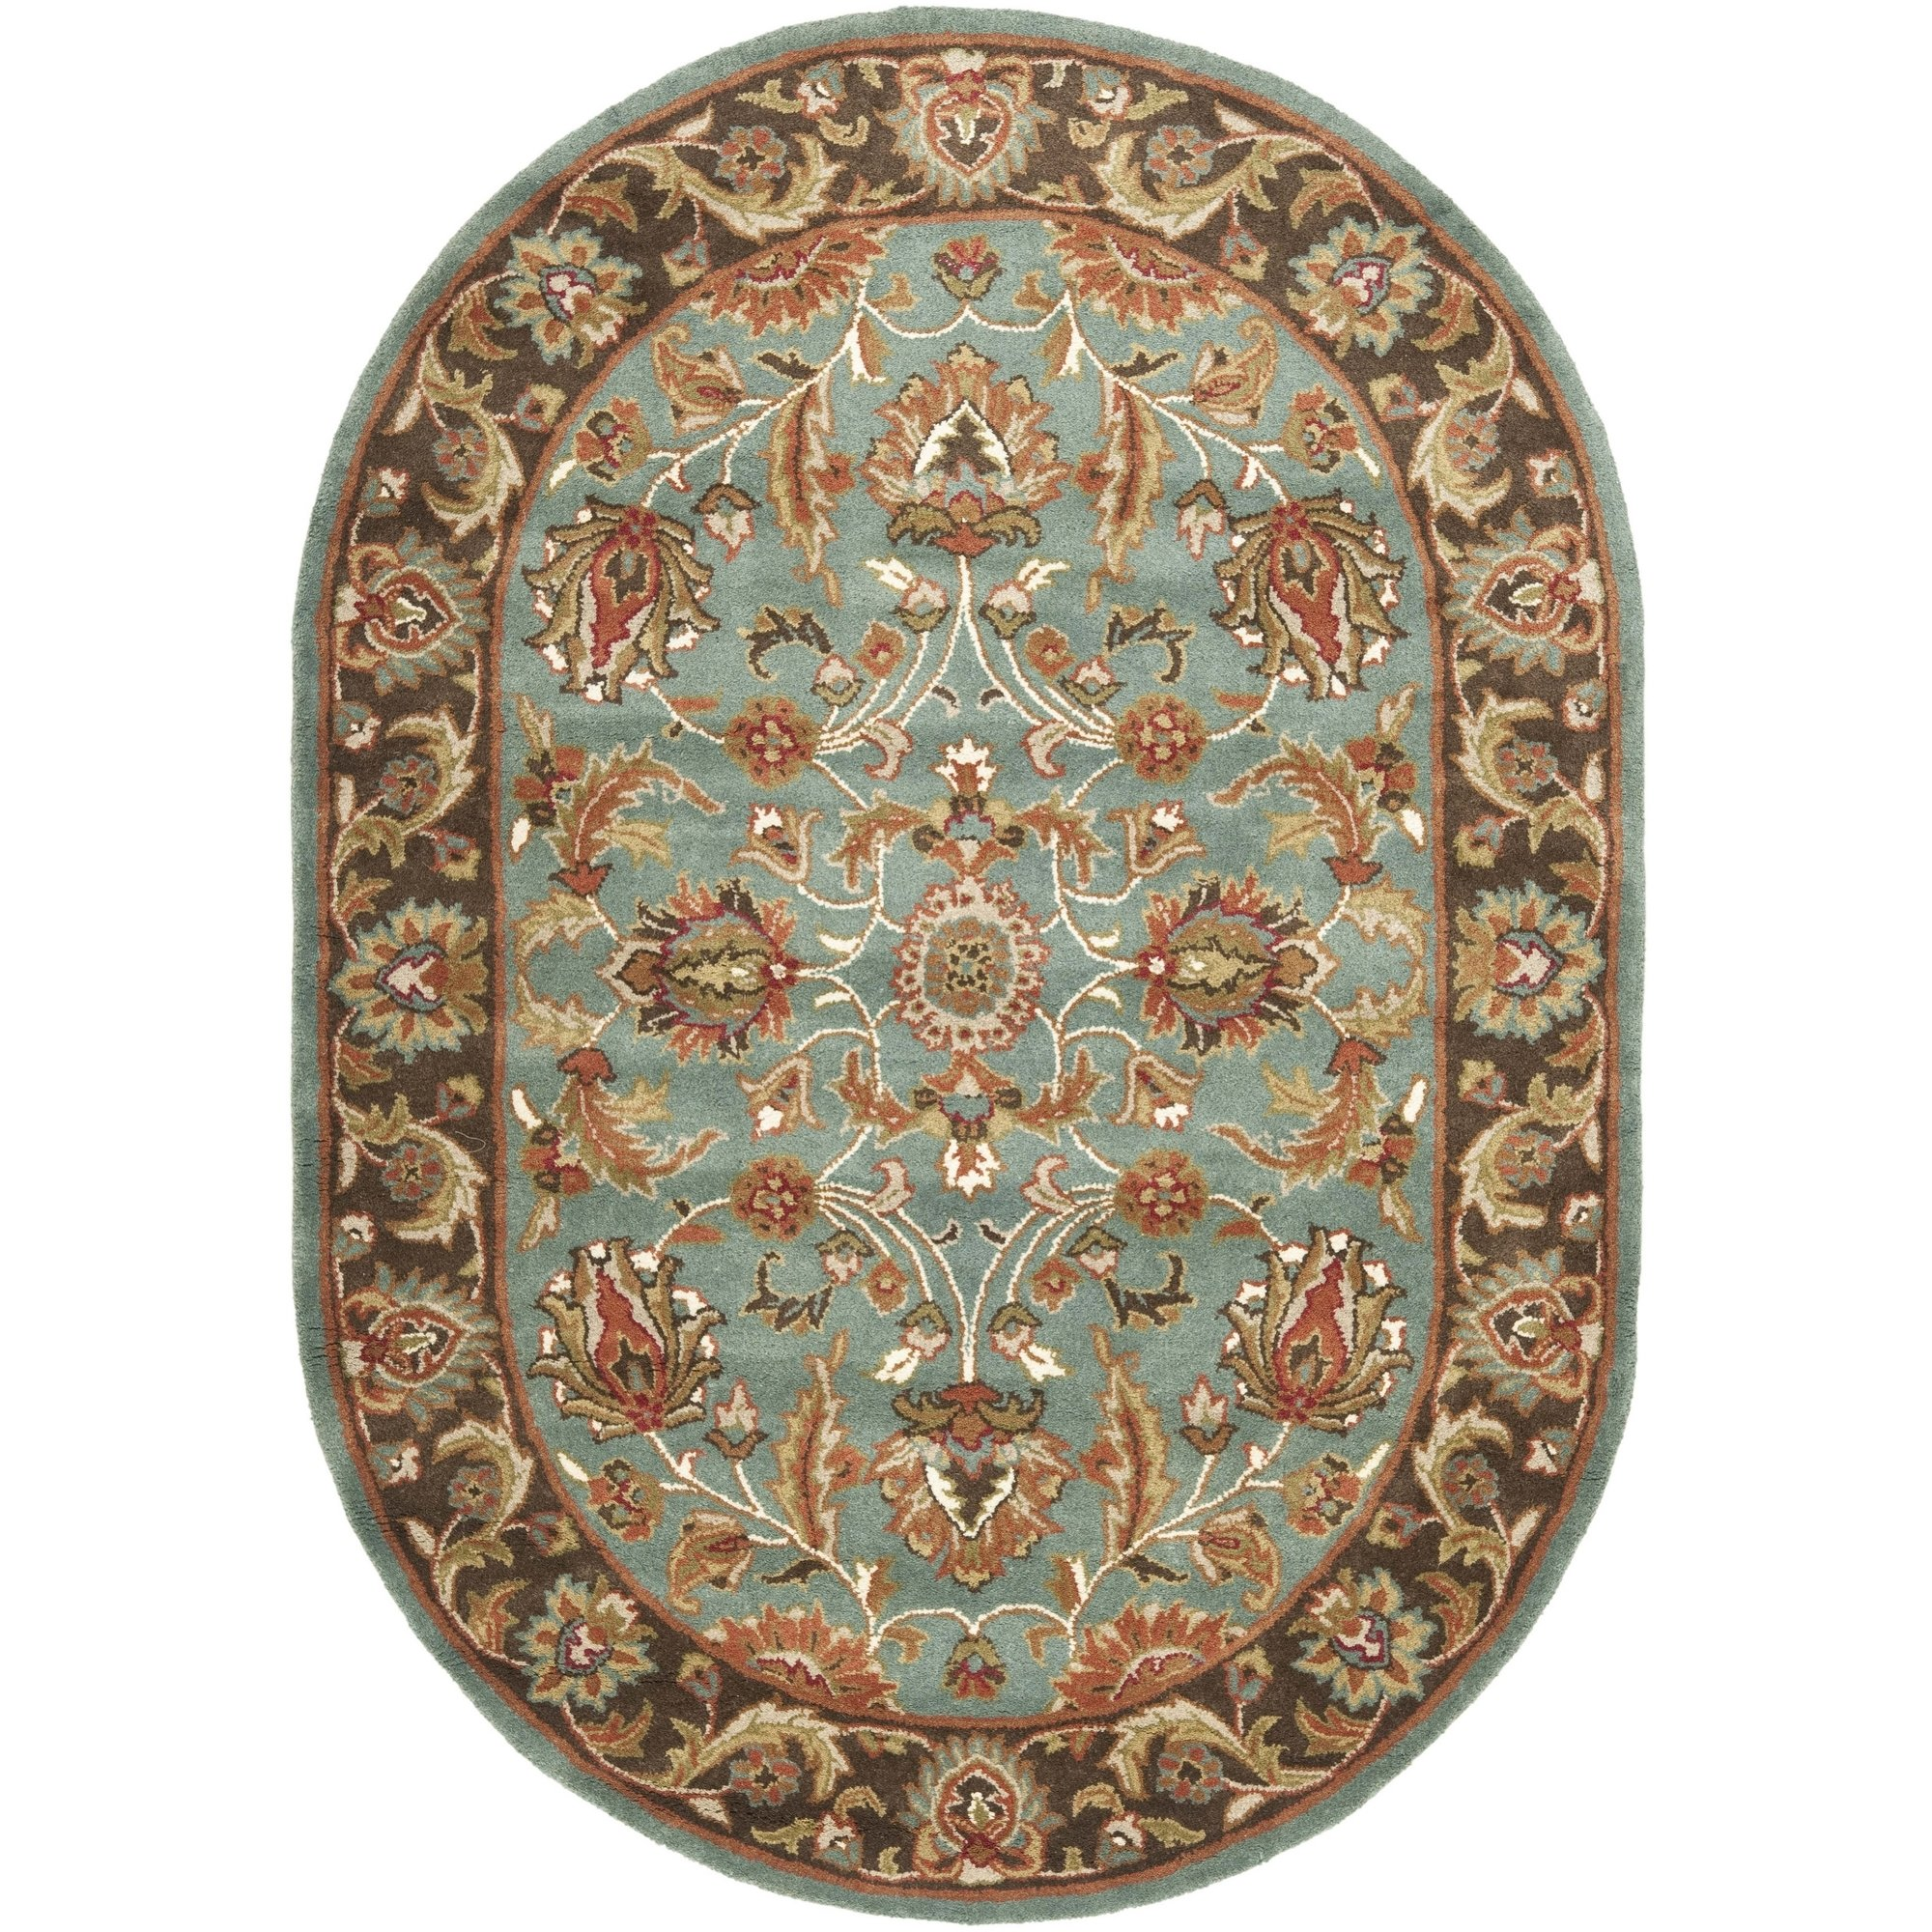 Safavieh Heritage Collection HG812B Handcrafted Traditional Oriental Blue and Brown Wool Oval Area Rug (7'6'' x 9'6'' Oval)